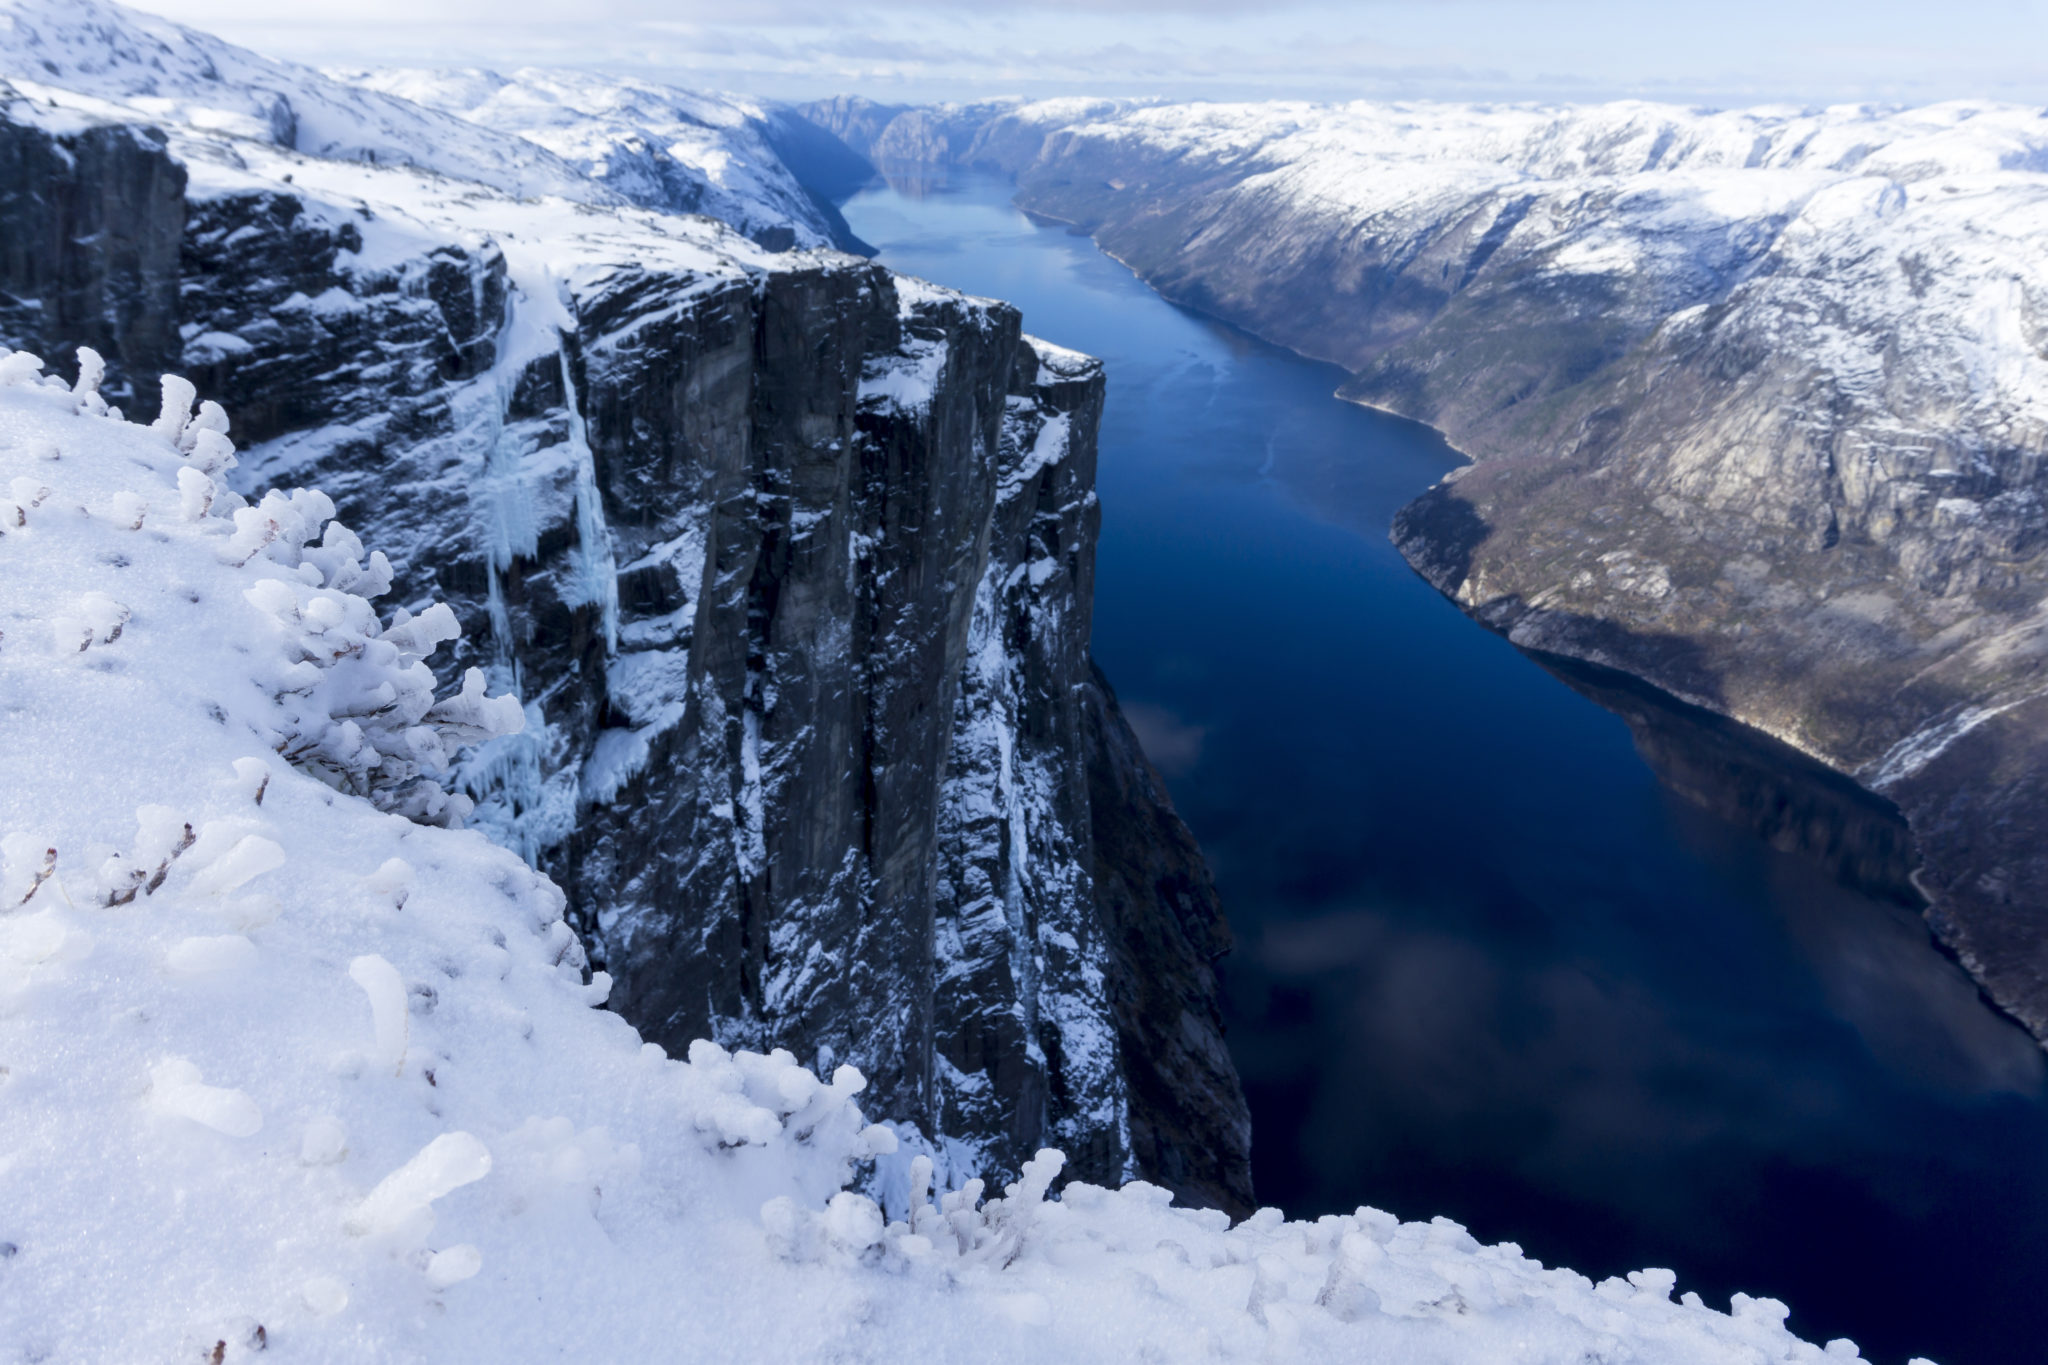 kjerag-boulder-norway-winter-easter-adventure